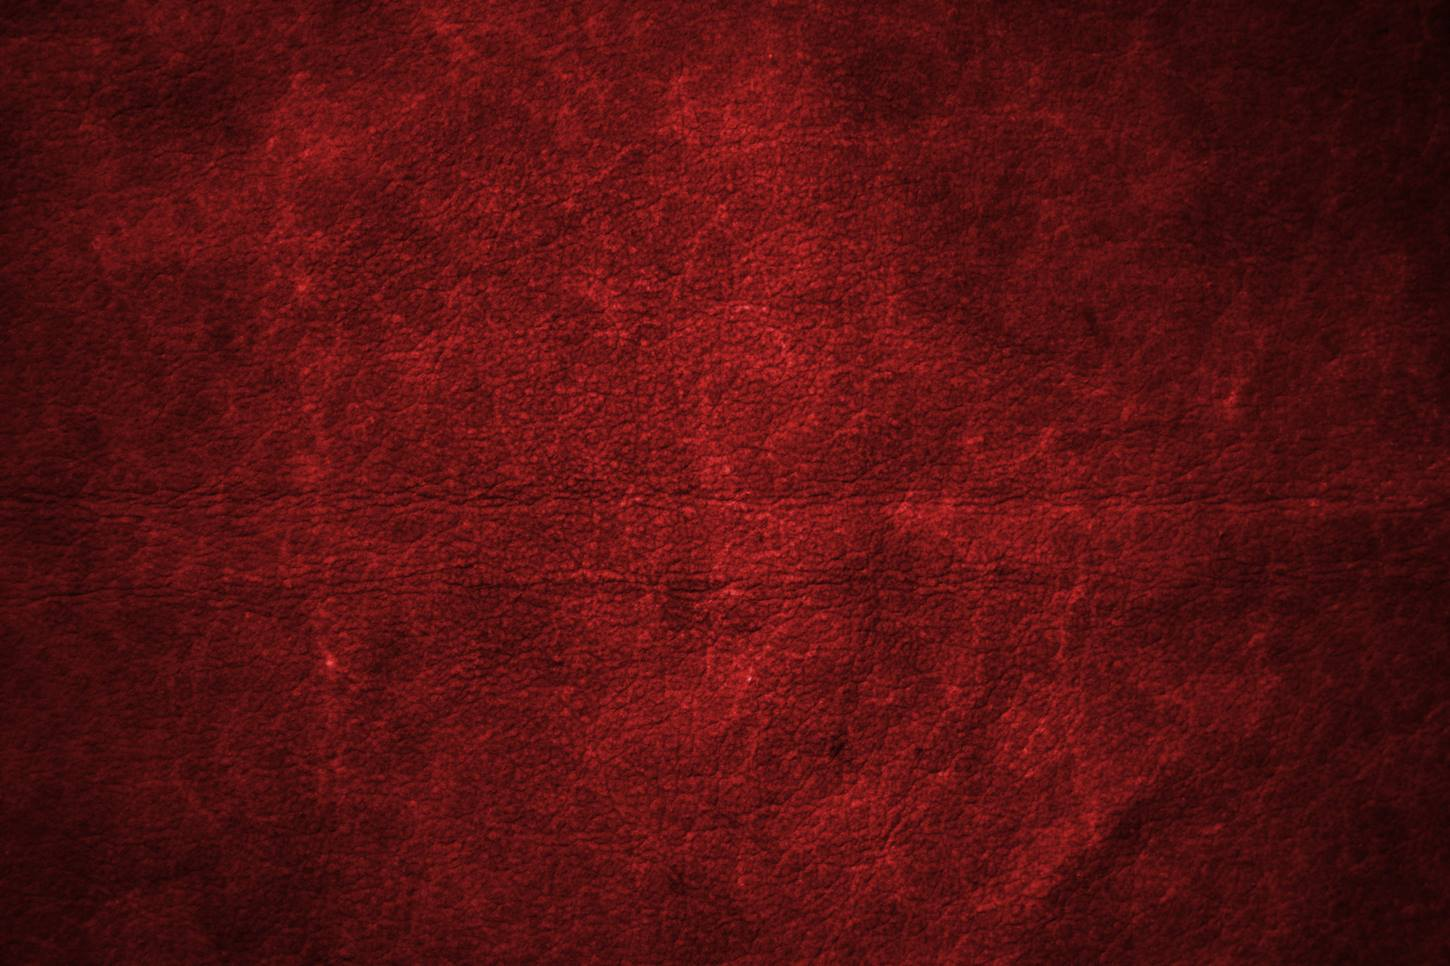 фоны - черные фоны Dark-red-grungy-texture-background